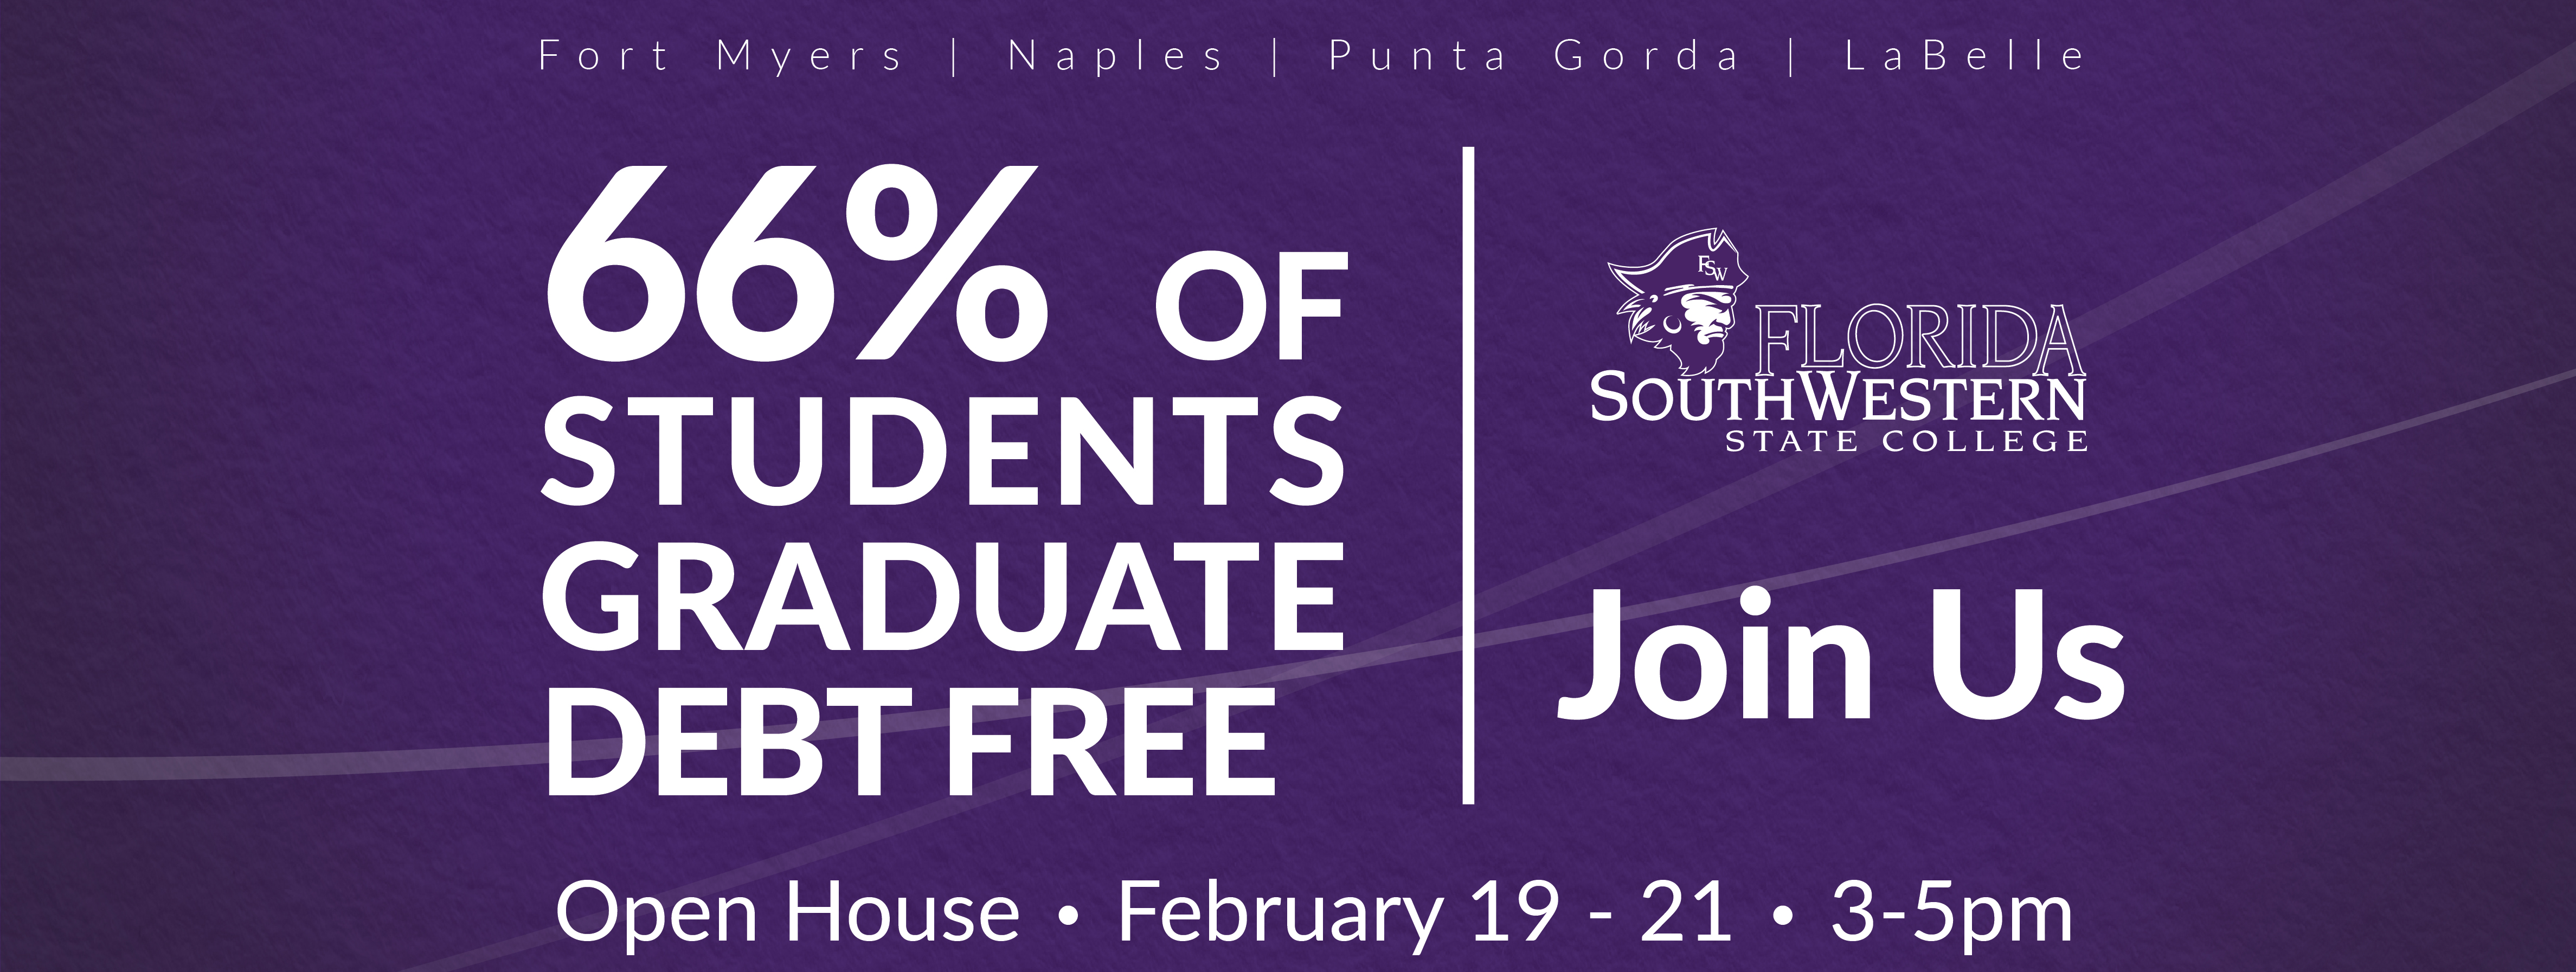 66 percent of students graduate from FSW debt free, please join us for open house sessions February 19th through 21st from 3:00pm to 5:00pm.